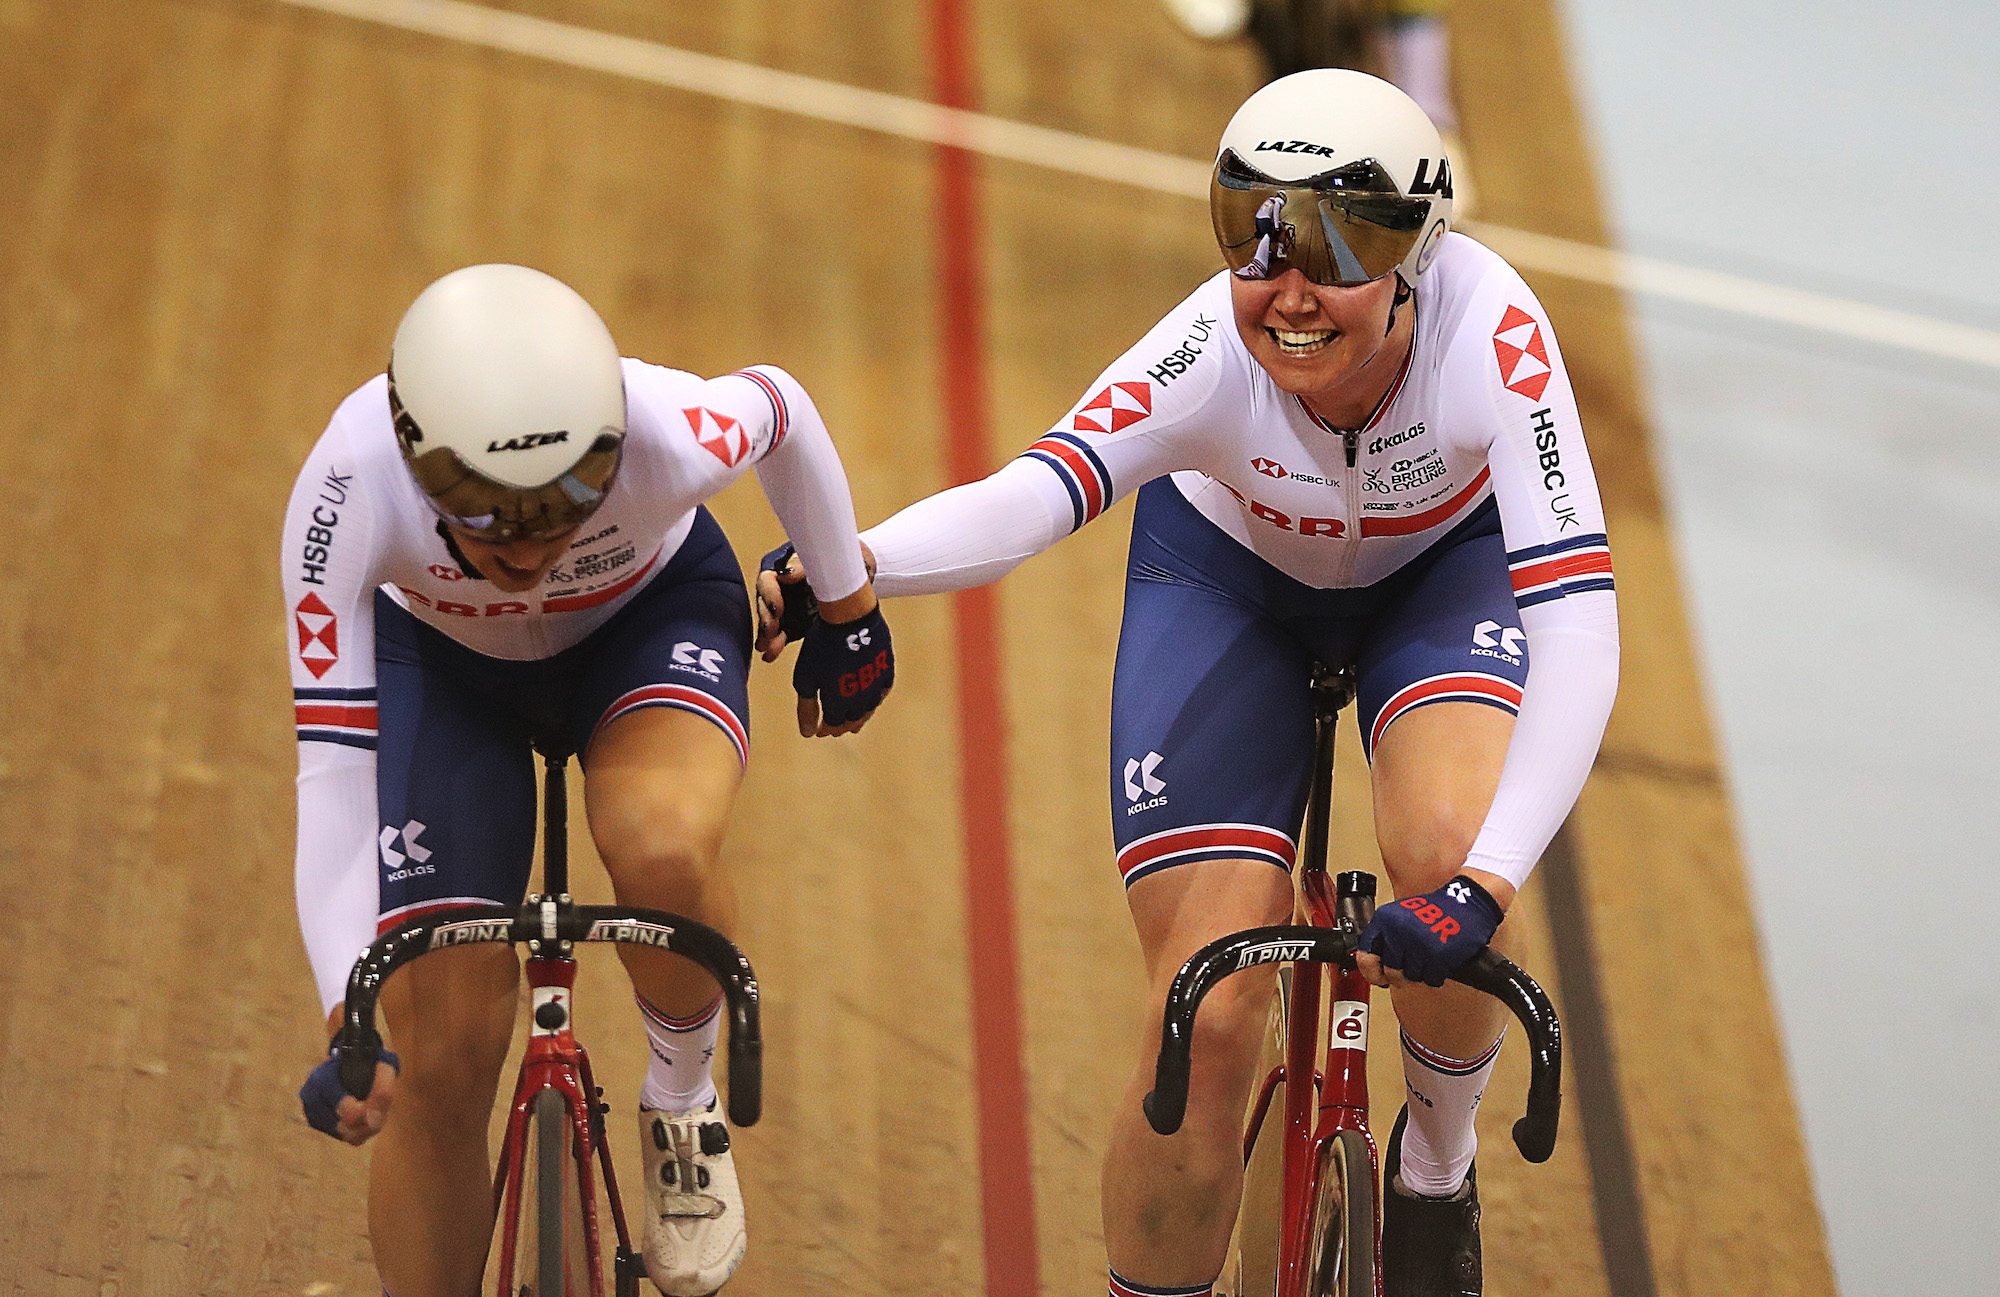 Chris Hoy says Katie Archibald can win three gold medals at Tokyo 2020